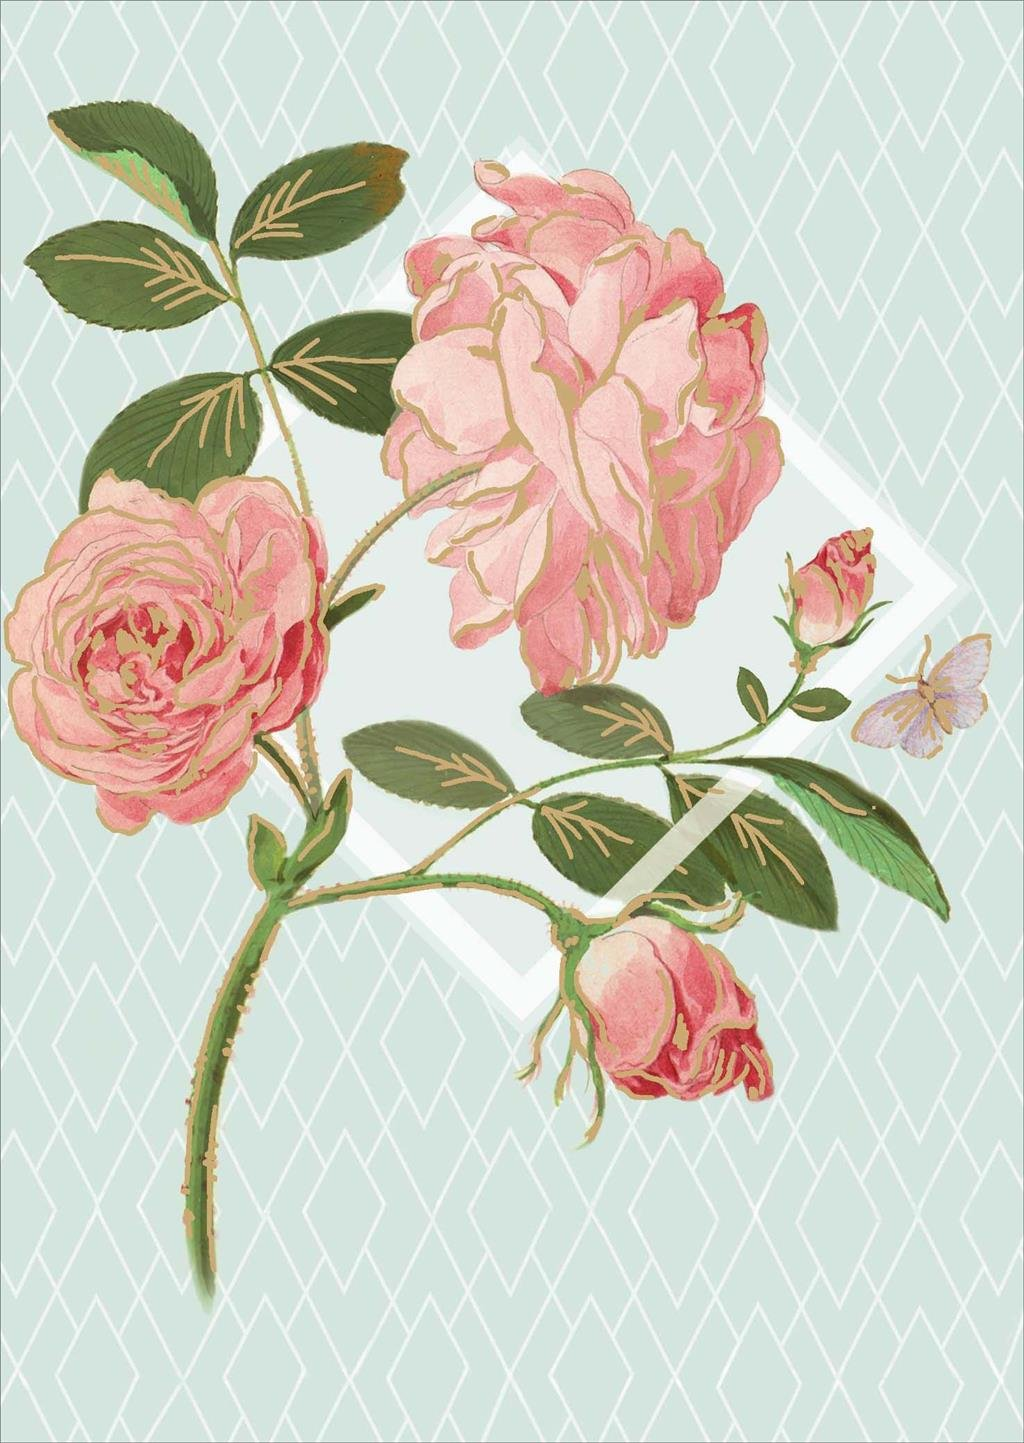 Royal Horticultural Society ? Floral Rose ? Beautiful Blank Greeting Card UK Greetings